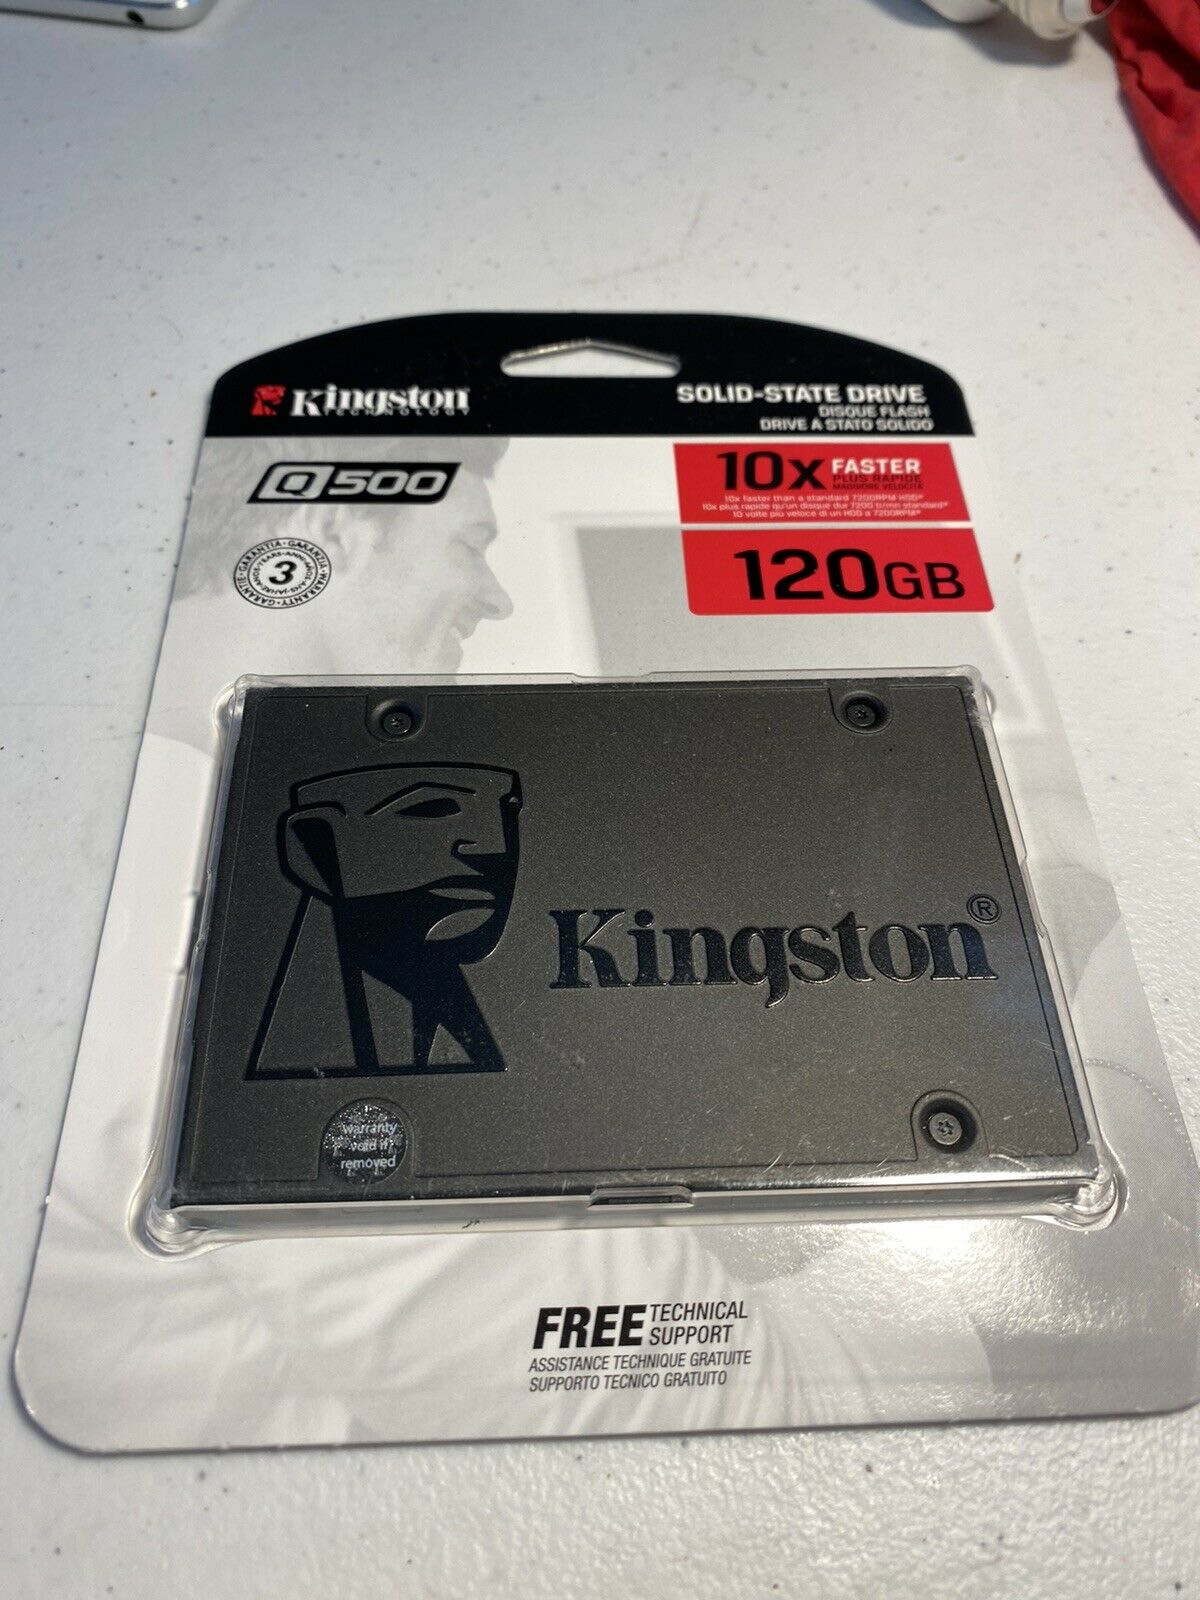 Kingston Q500 120GB 2.5